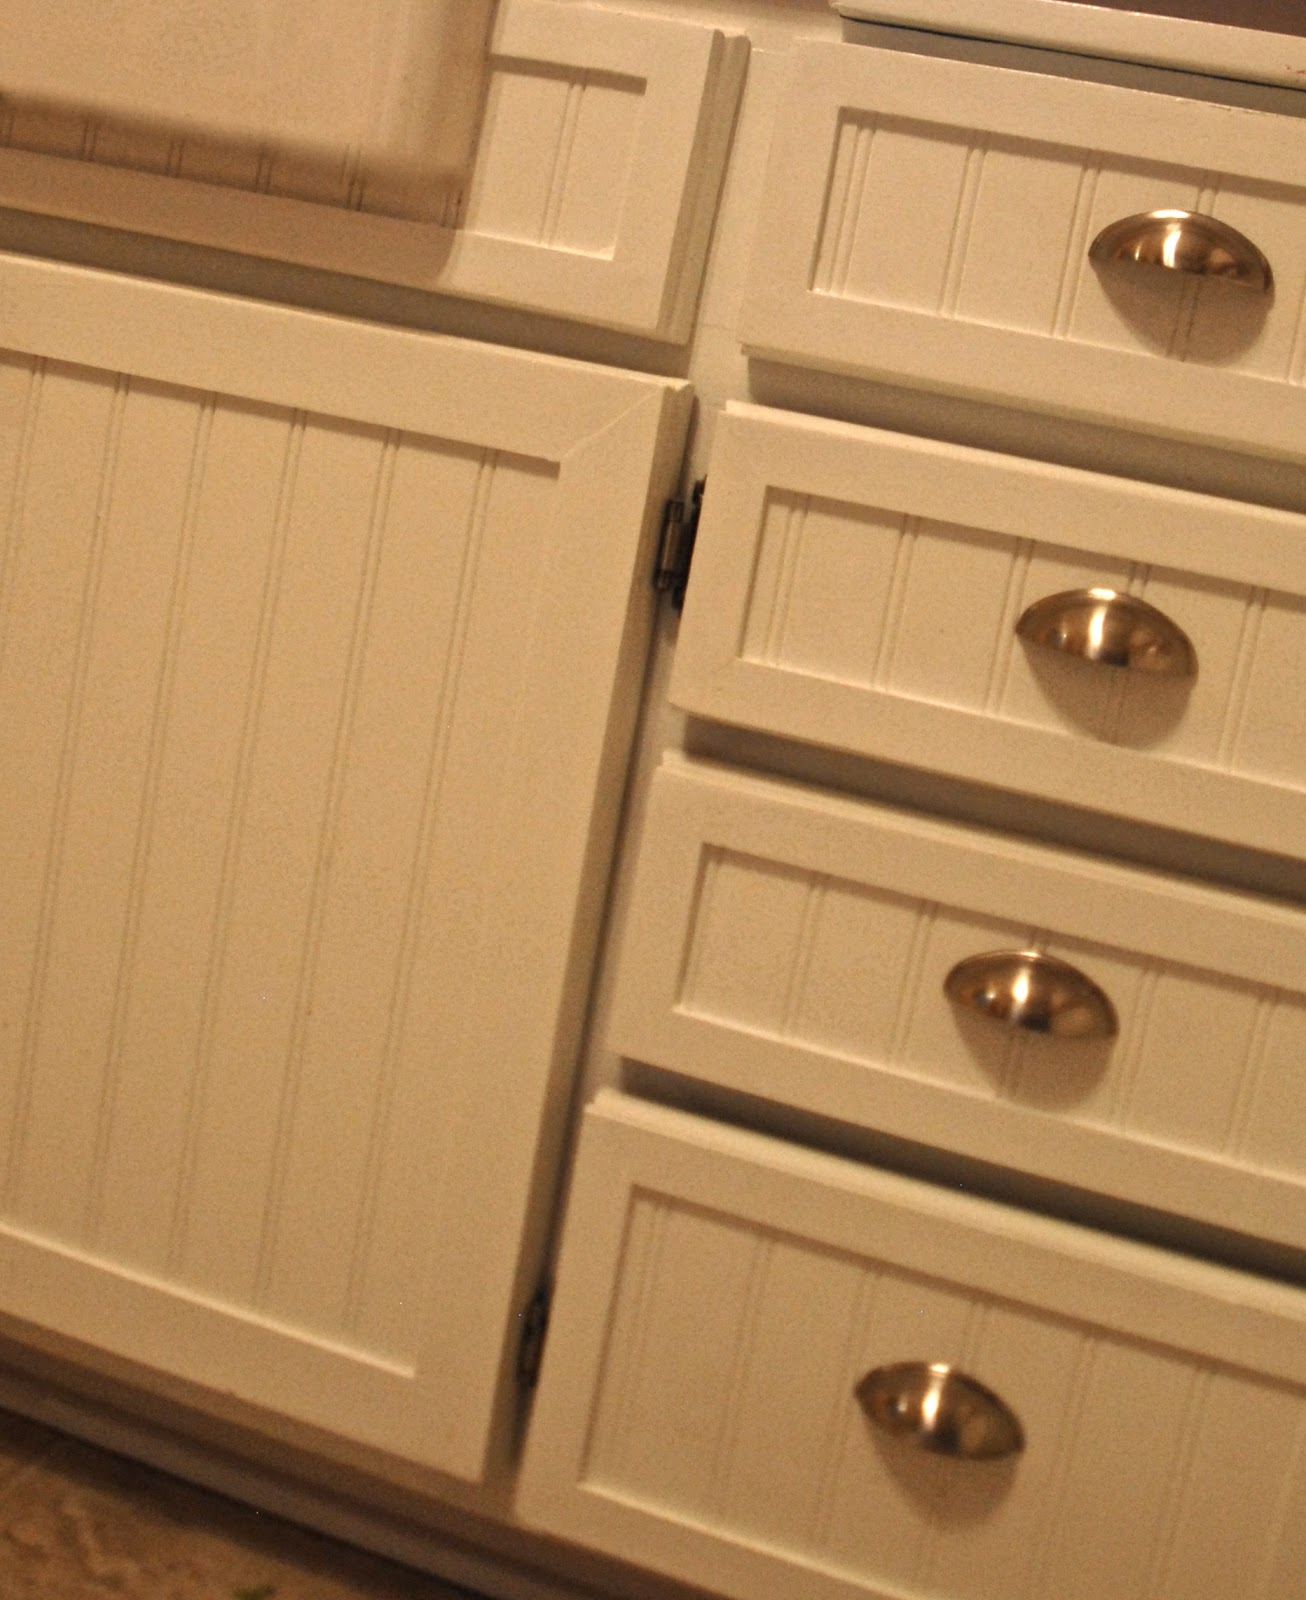 Reface Kitchen Cabinets Doors: House Envy* The Beach House: House Envy* Kitchen Reveal